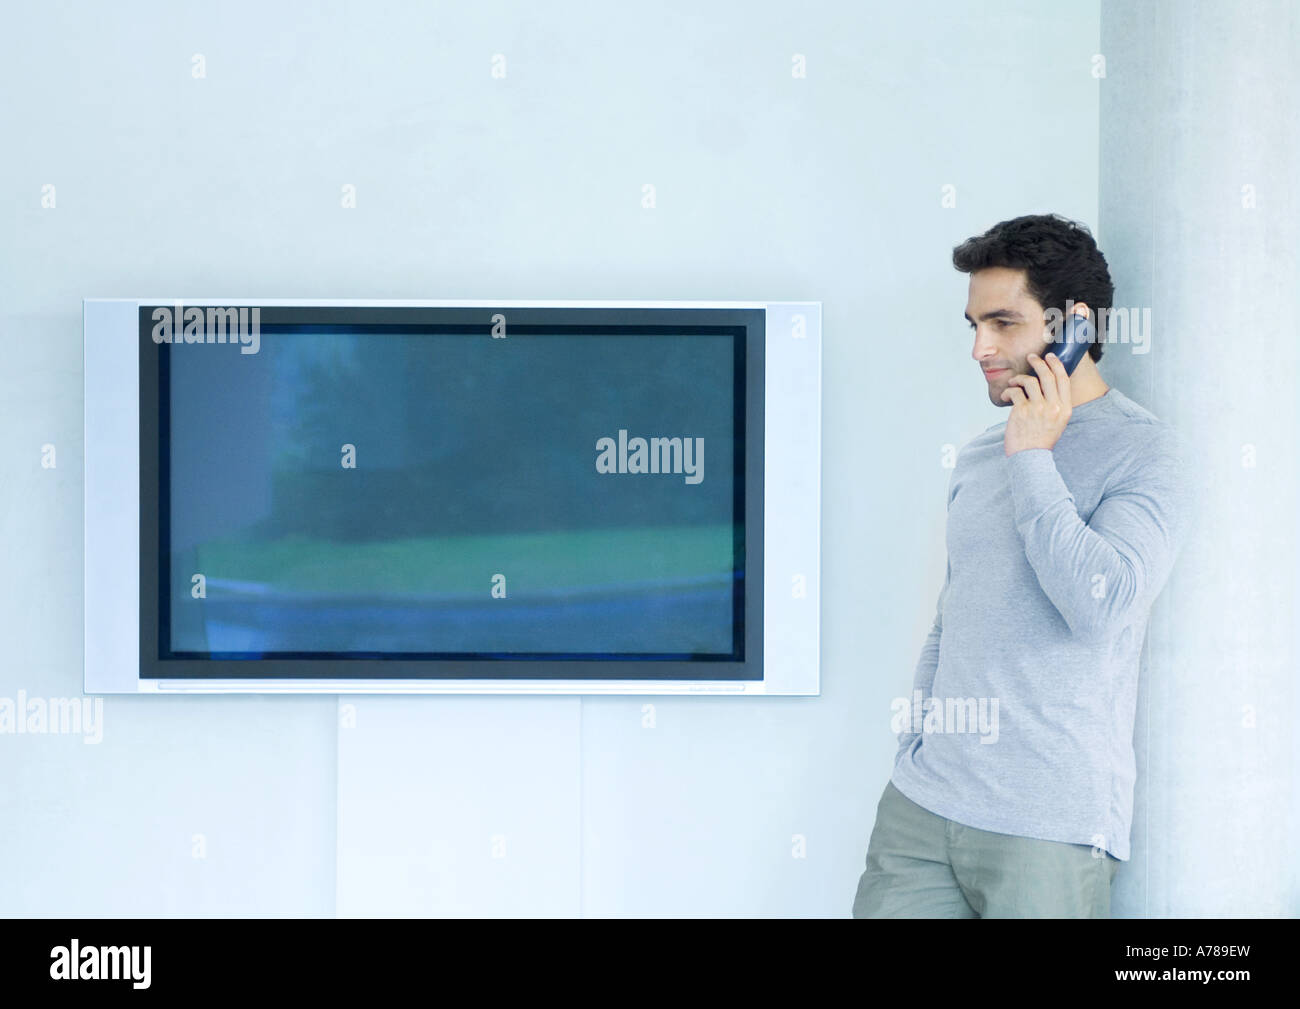 Man leaning against wall using phone, next to widescreen TV - Stock Image